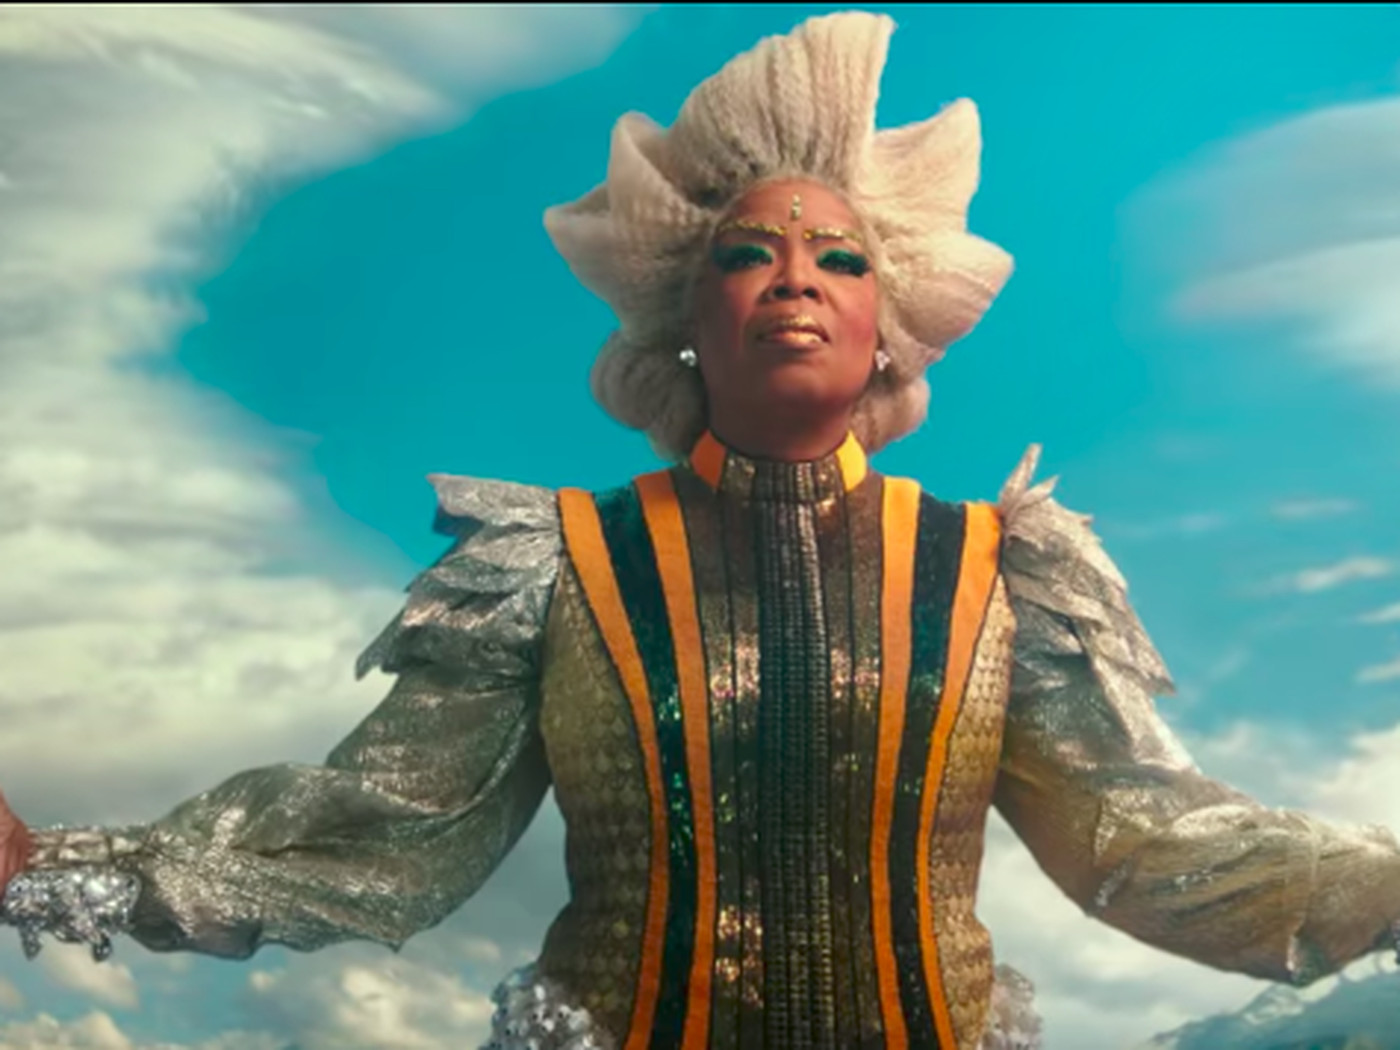 A Wrinkle In Time Trailer Introduces Whimsical Worlds Oddball